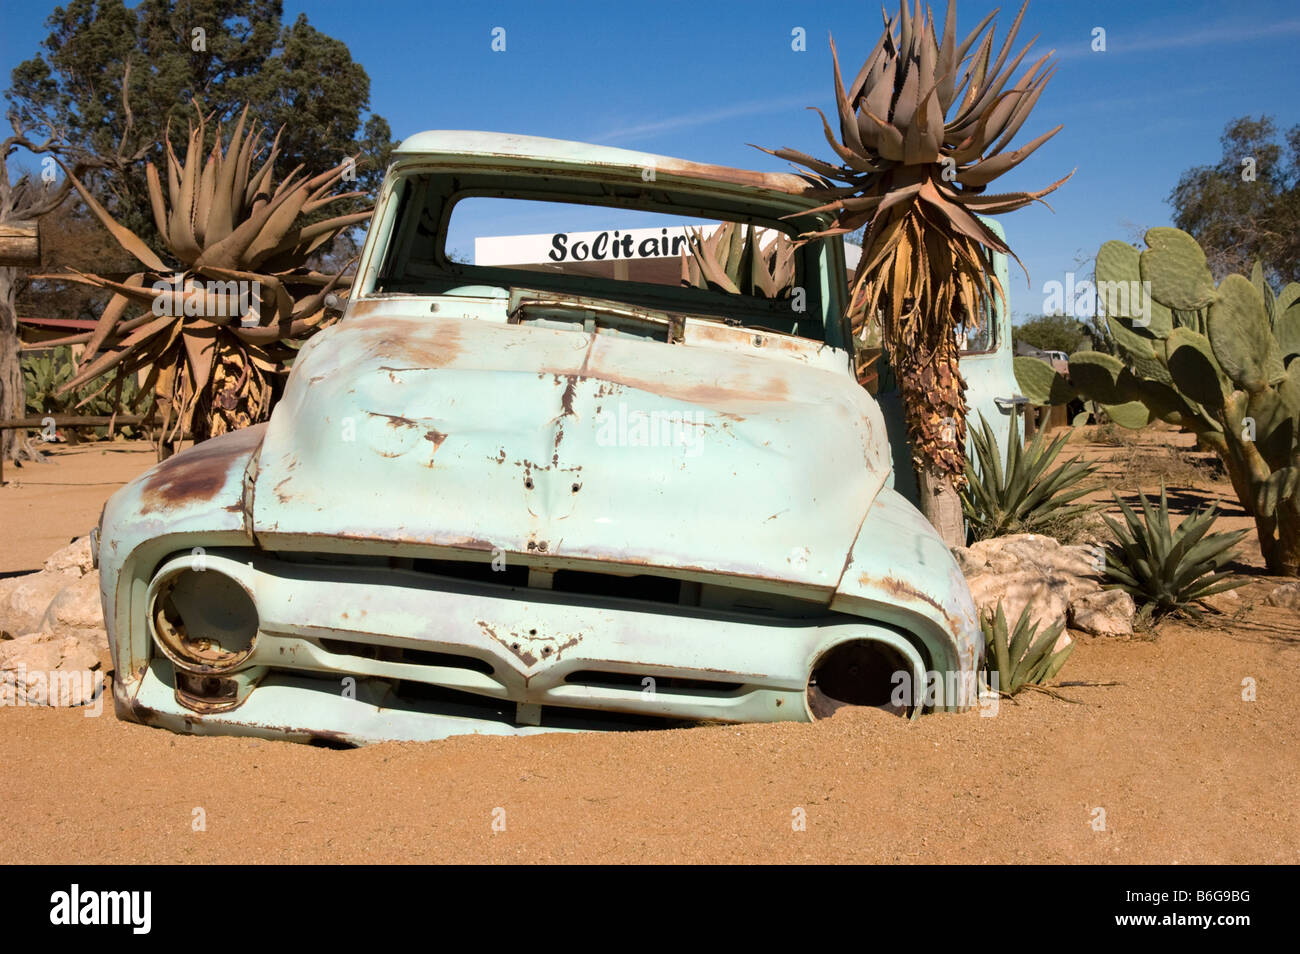 Stock photo wreck of a classic car in the desert town of solitaire namibia africa